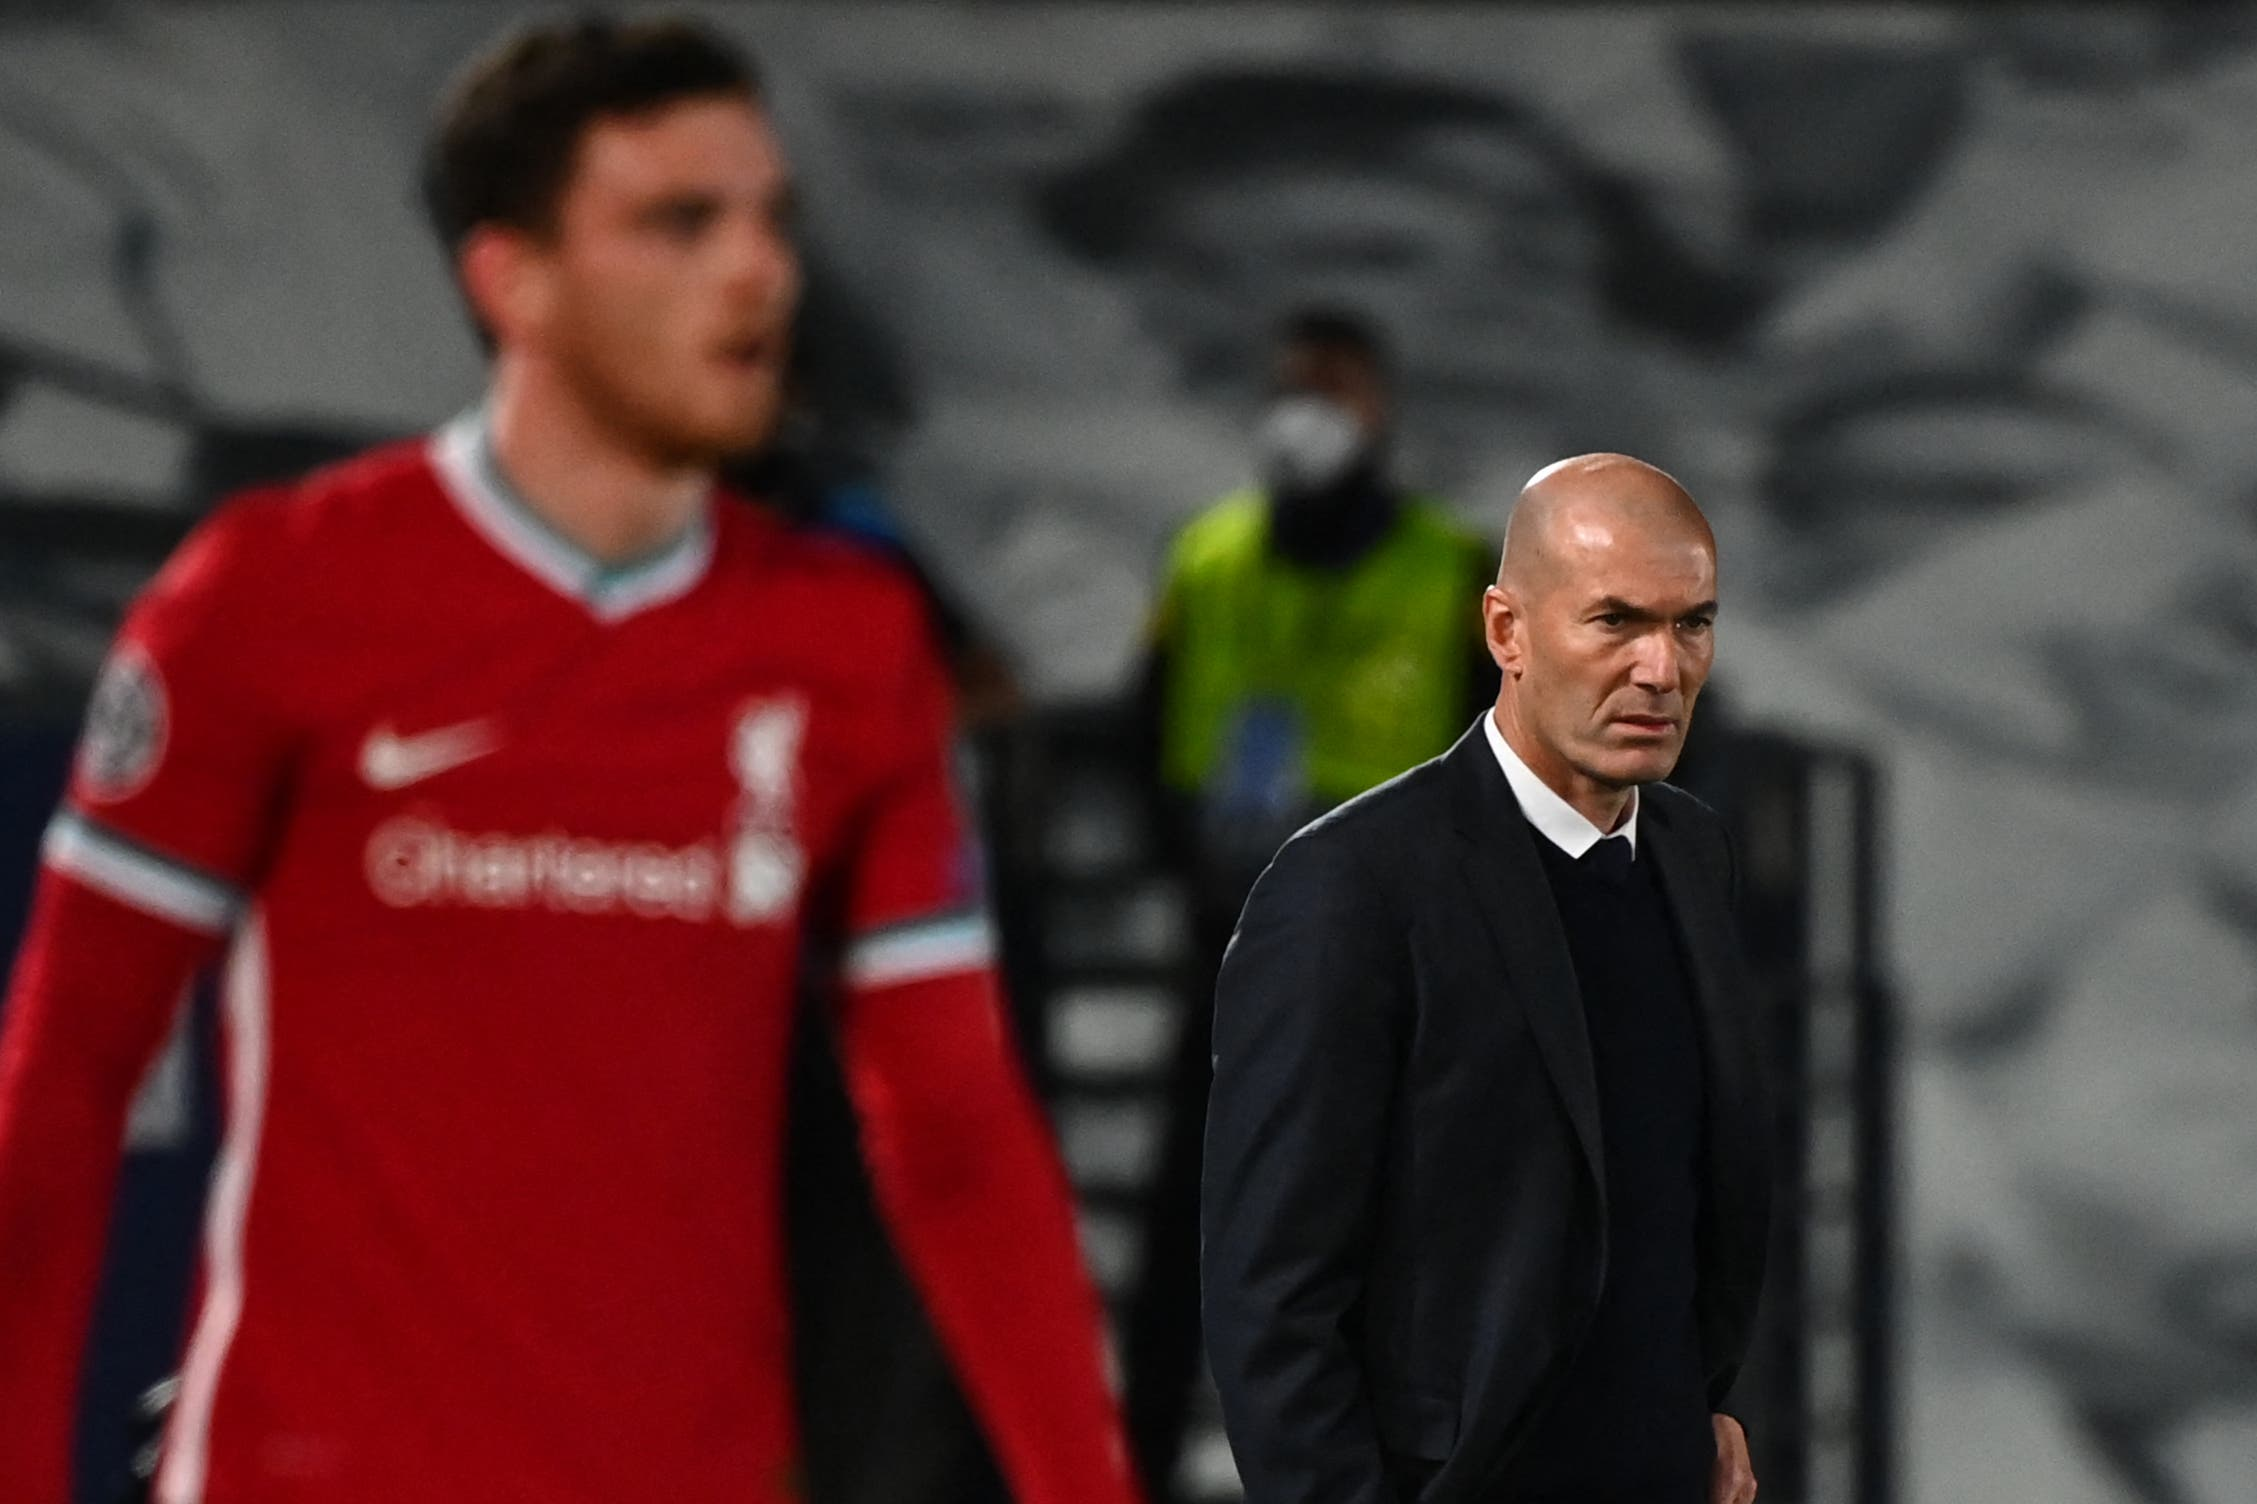 Liverpool FC vs Real Madrid: Zinedine Zidane ready for Anfield test with squad 'stretched to the limit'